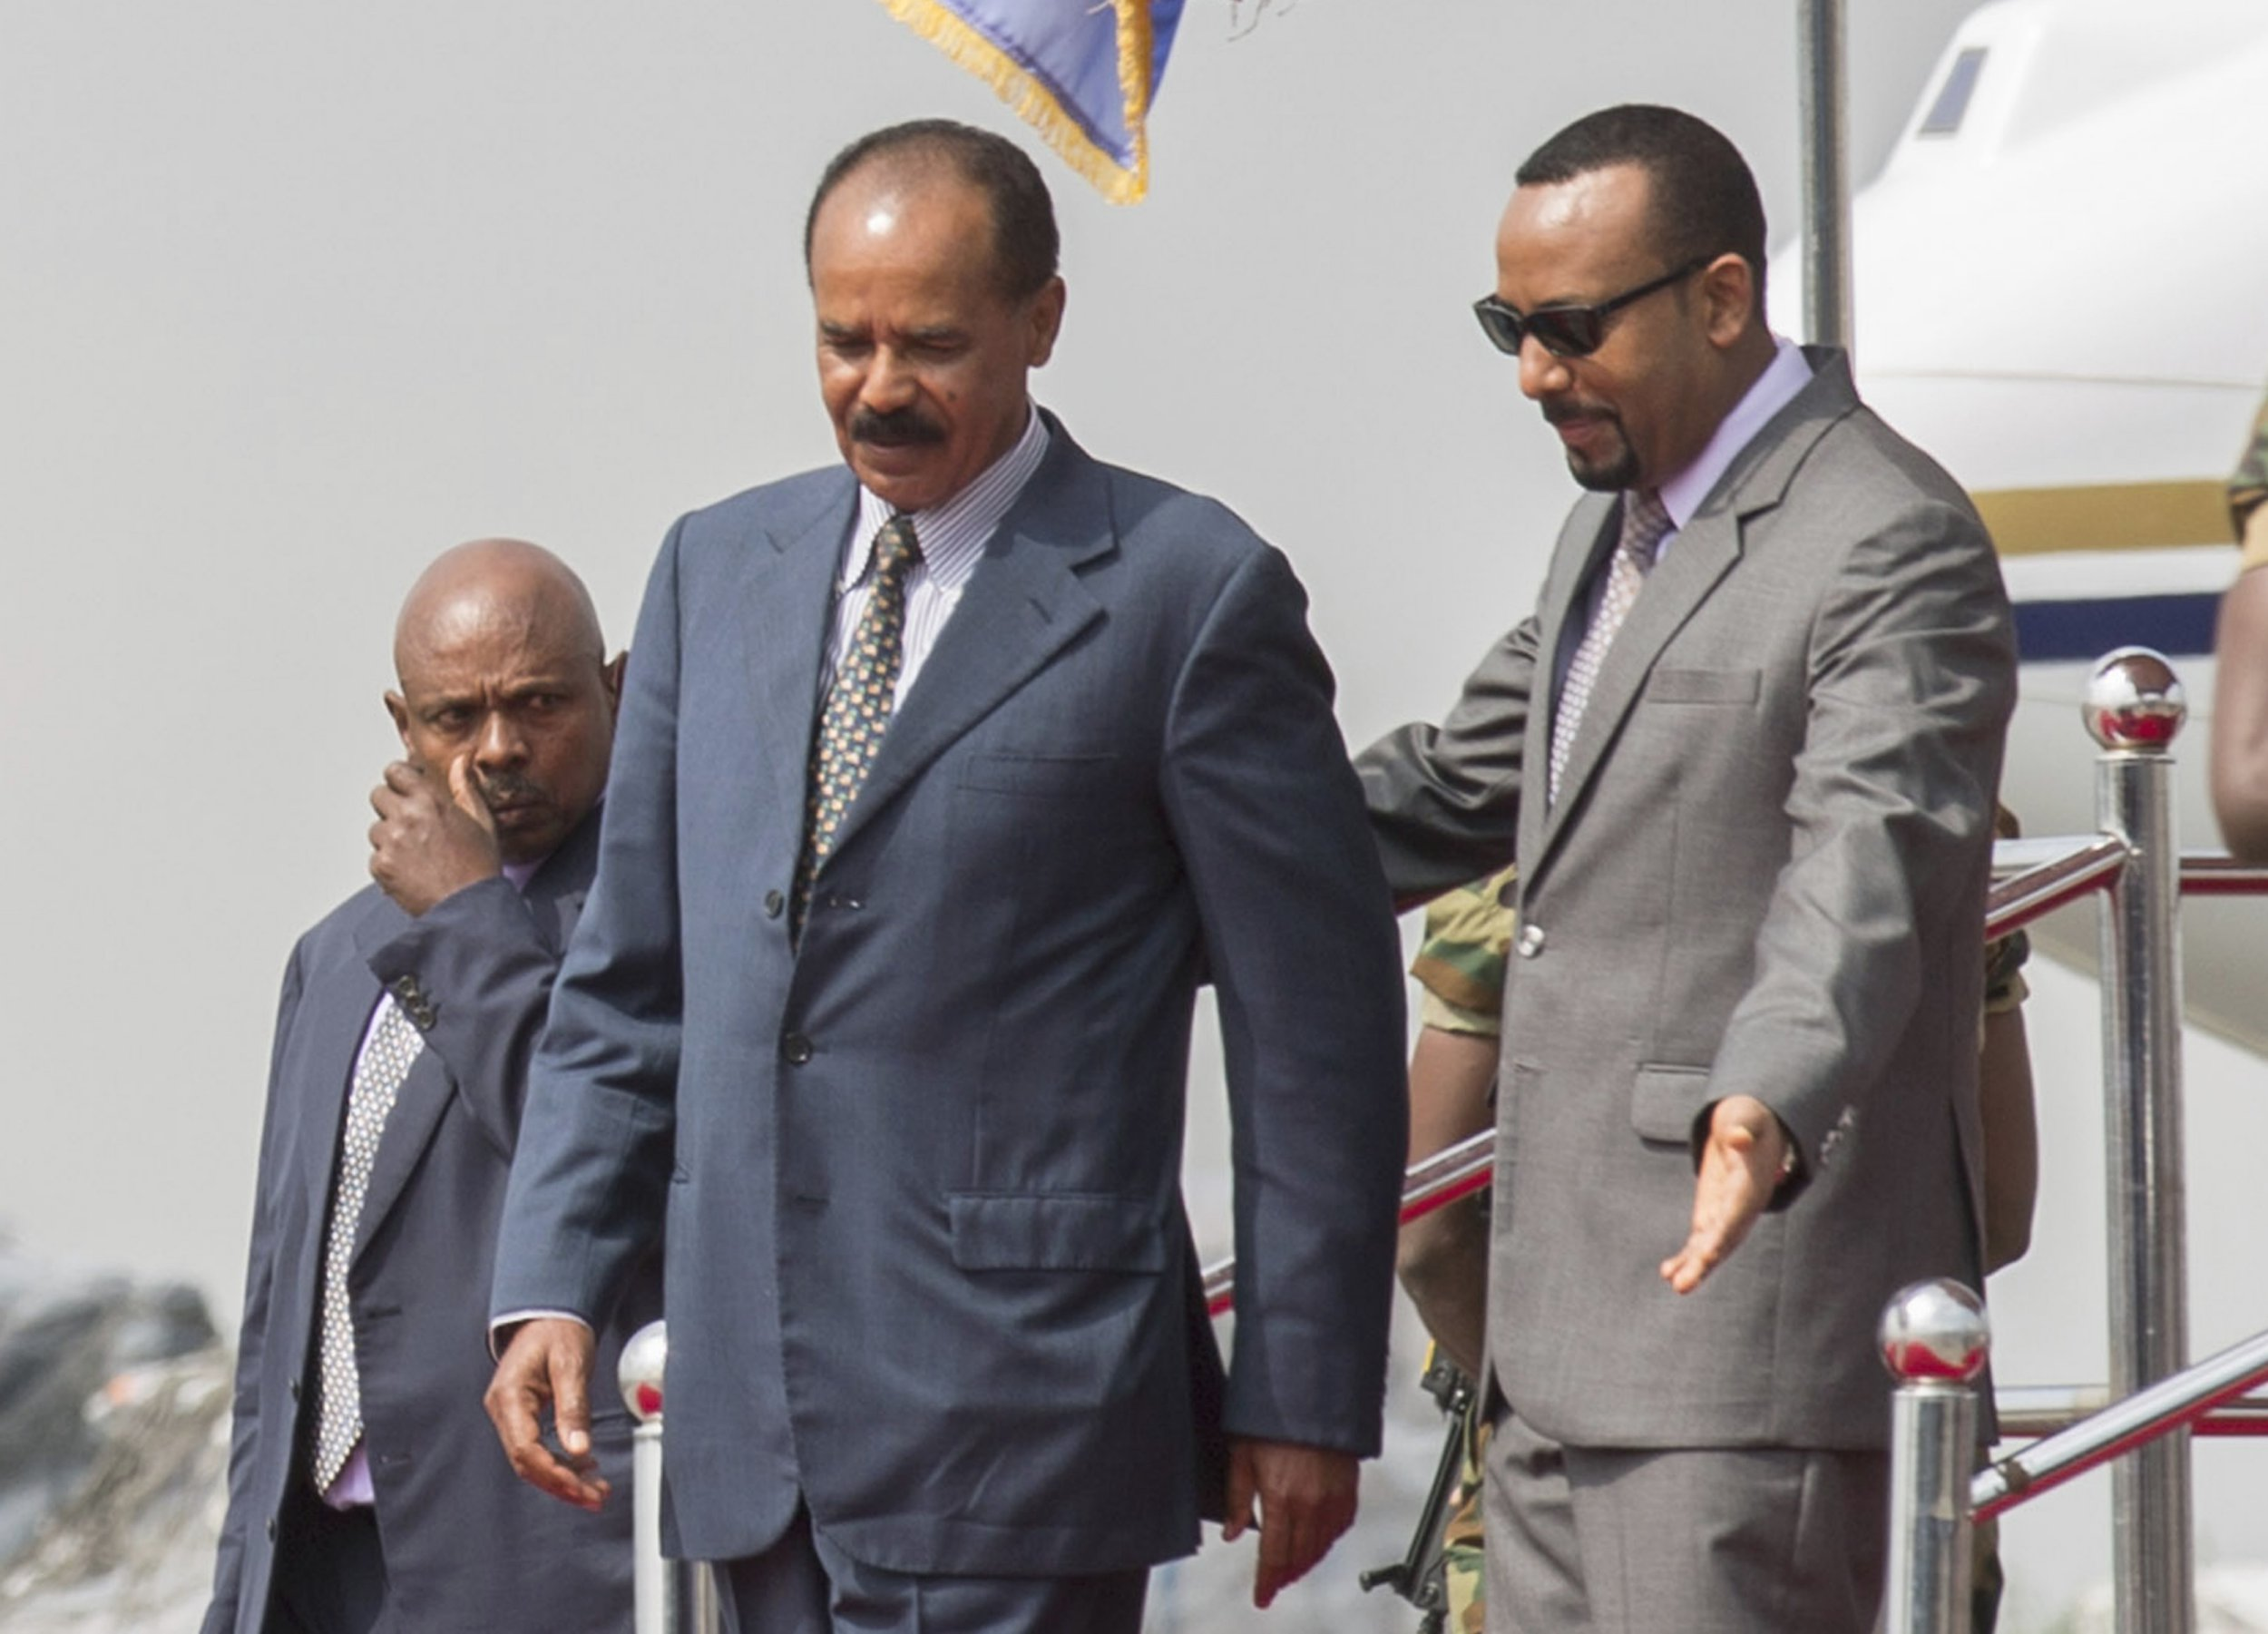 Eritrean President Isaias Afwerki, foreground left is welcomed by Ethiopia's Prime Minister Abiy Ahmed upon his arrival a Addis Ababa International Airport, Ethiopia, Saturday, July 14, 2018. To dancing and cheers, Eritrea's longtime president arrived in Ethiopia for his first visit in 22 years on Saturday amid a dramatic diplomatic thaw between the once-bitter rivals. (AP Photo Mulugeta Ayene)